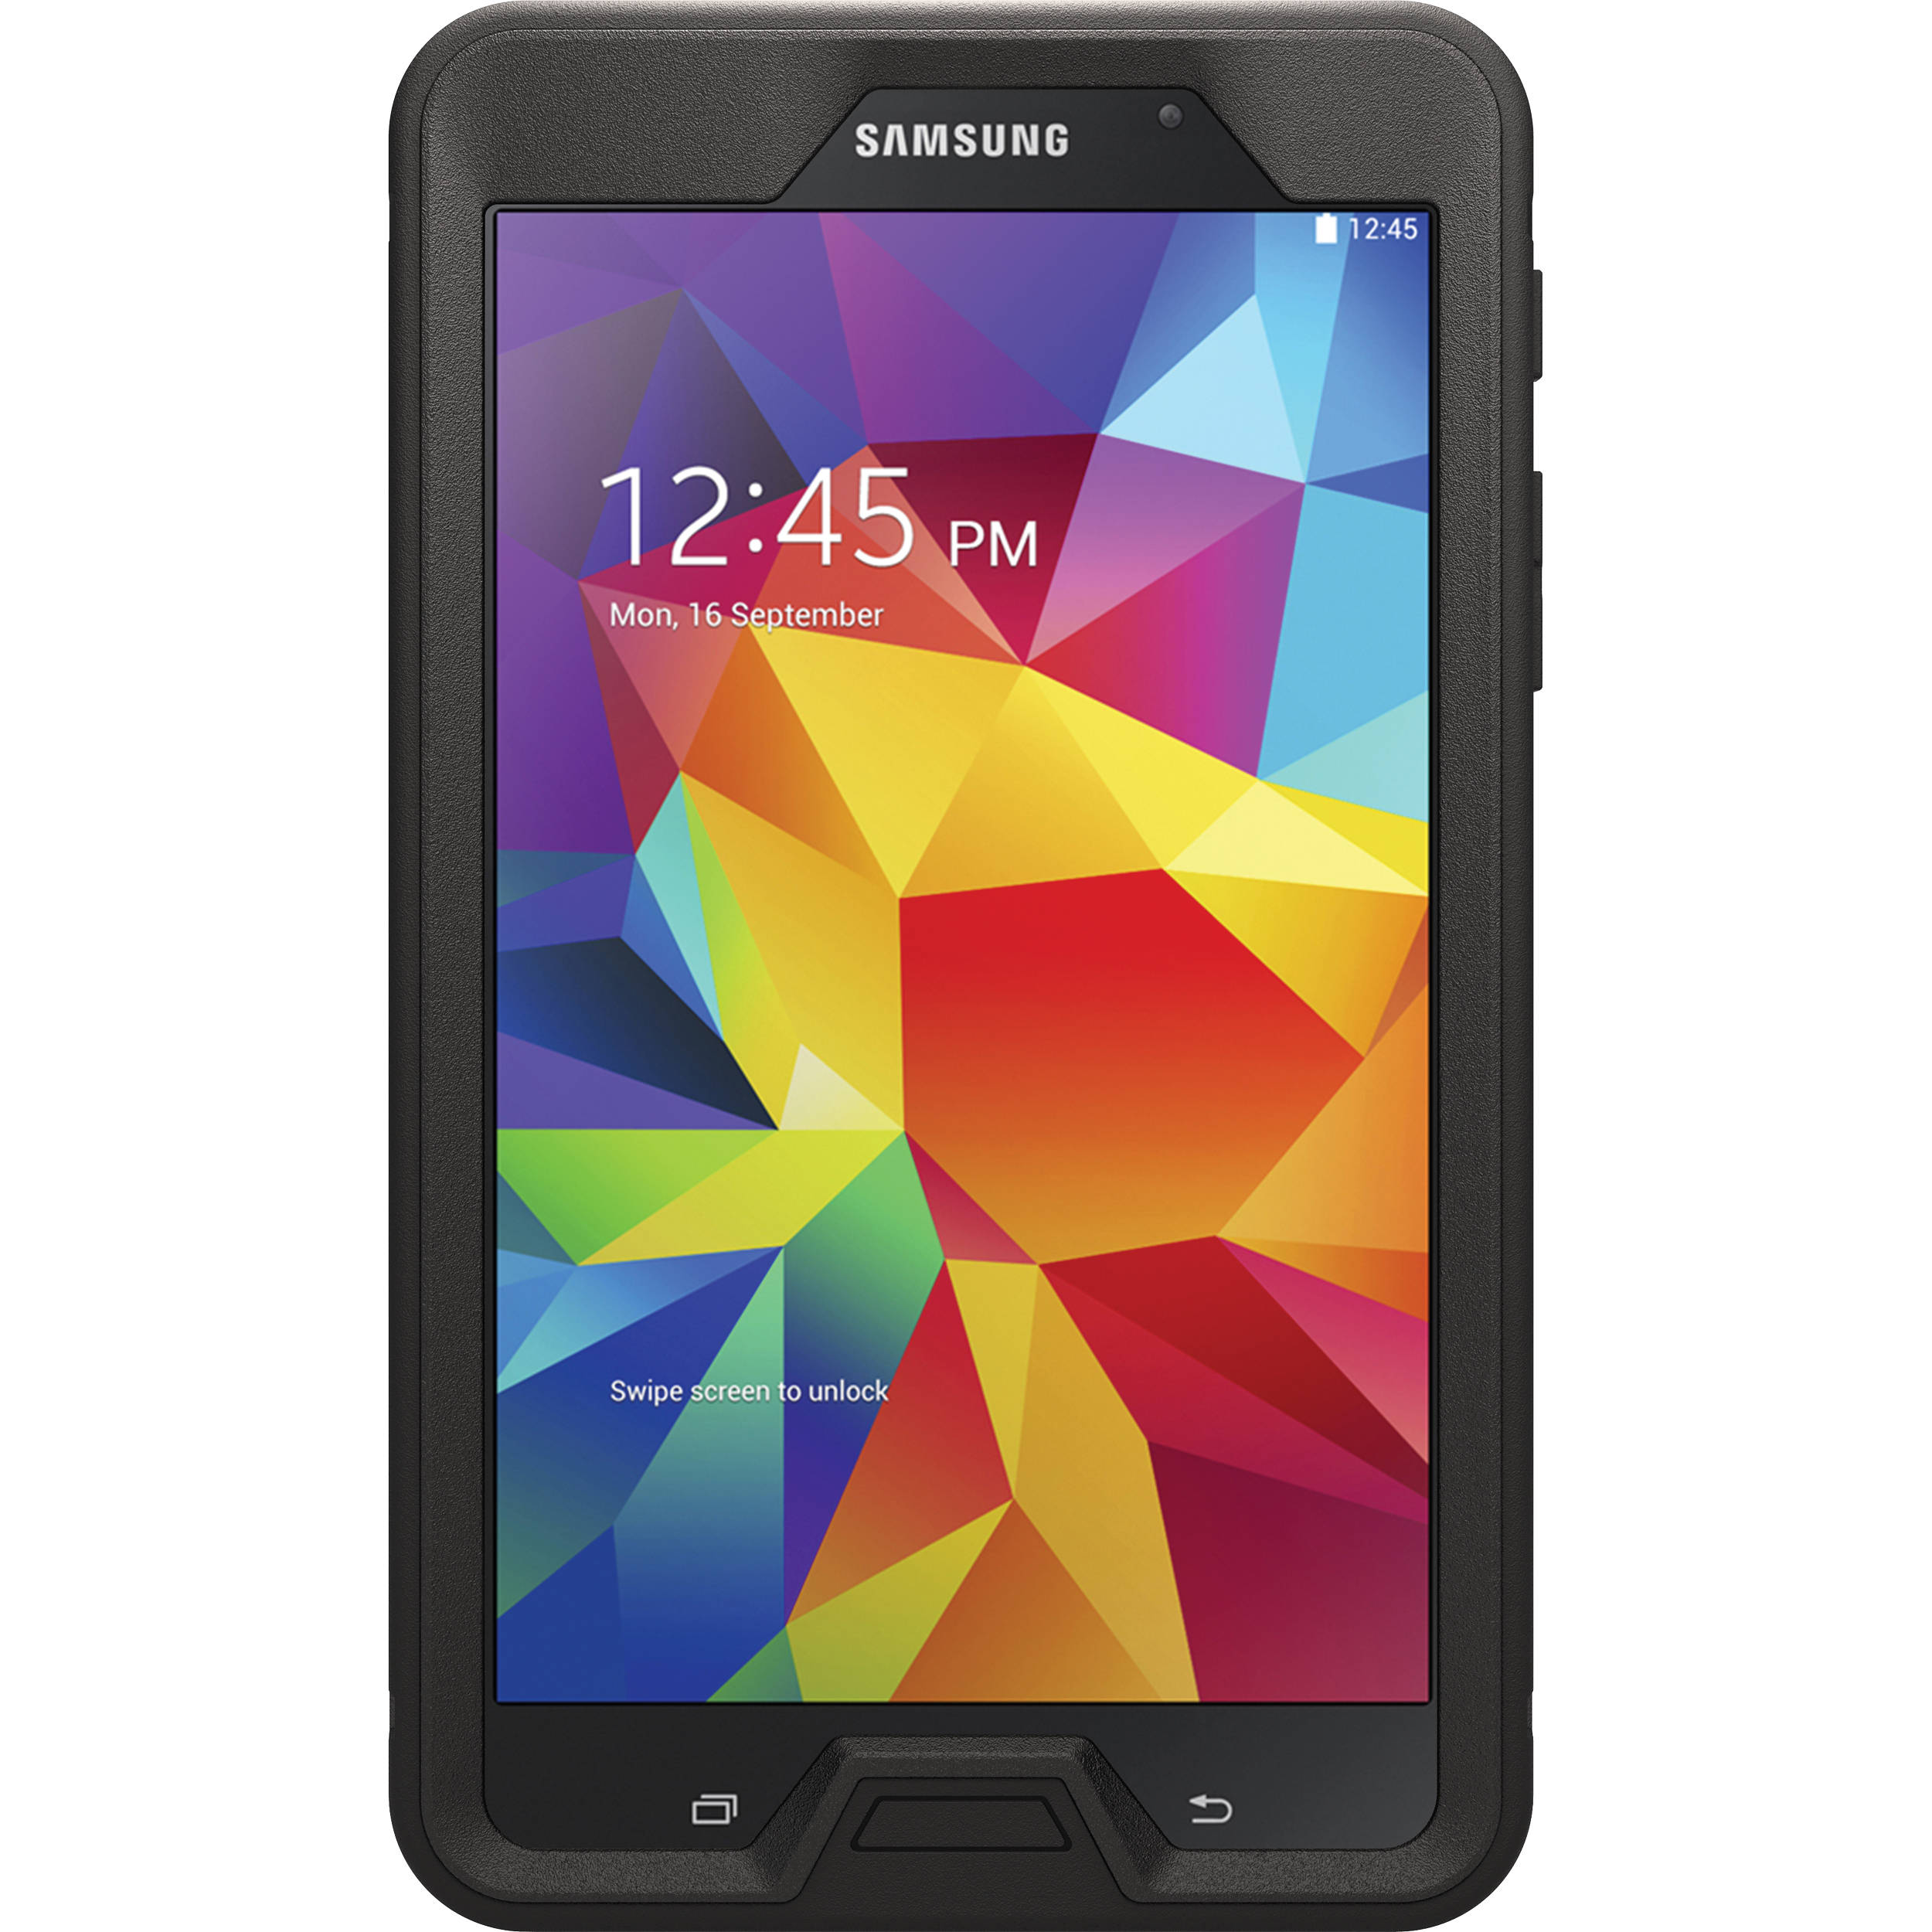 Otterbox Defender Series Case For Galaxy Tab 4 70 77 43076 Bh New Ipad Black Tablet Or Not Included